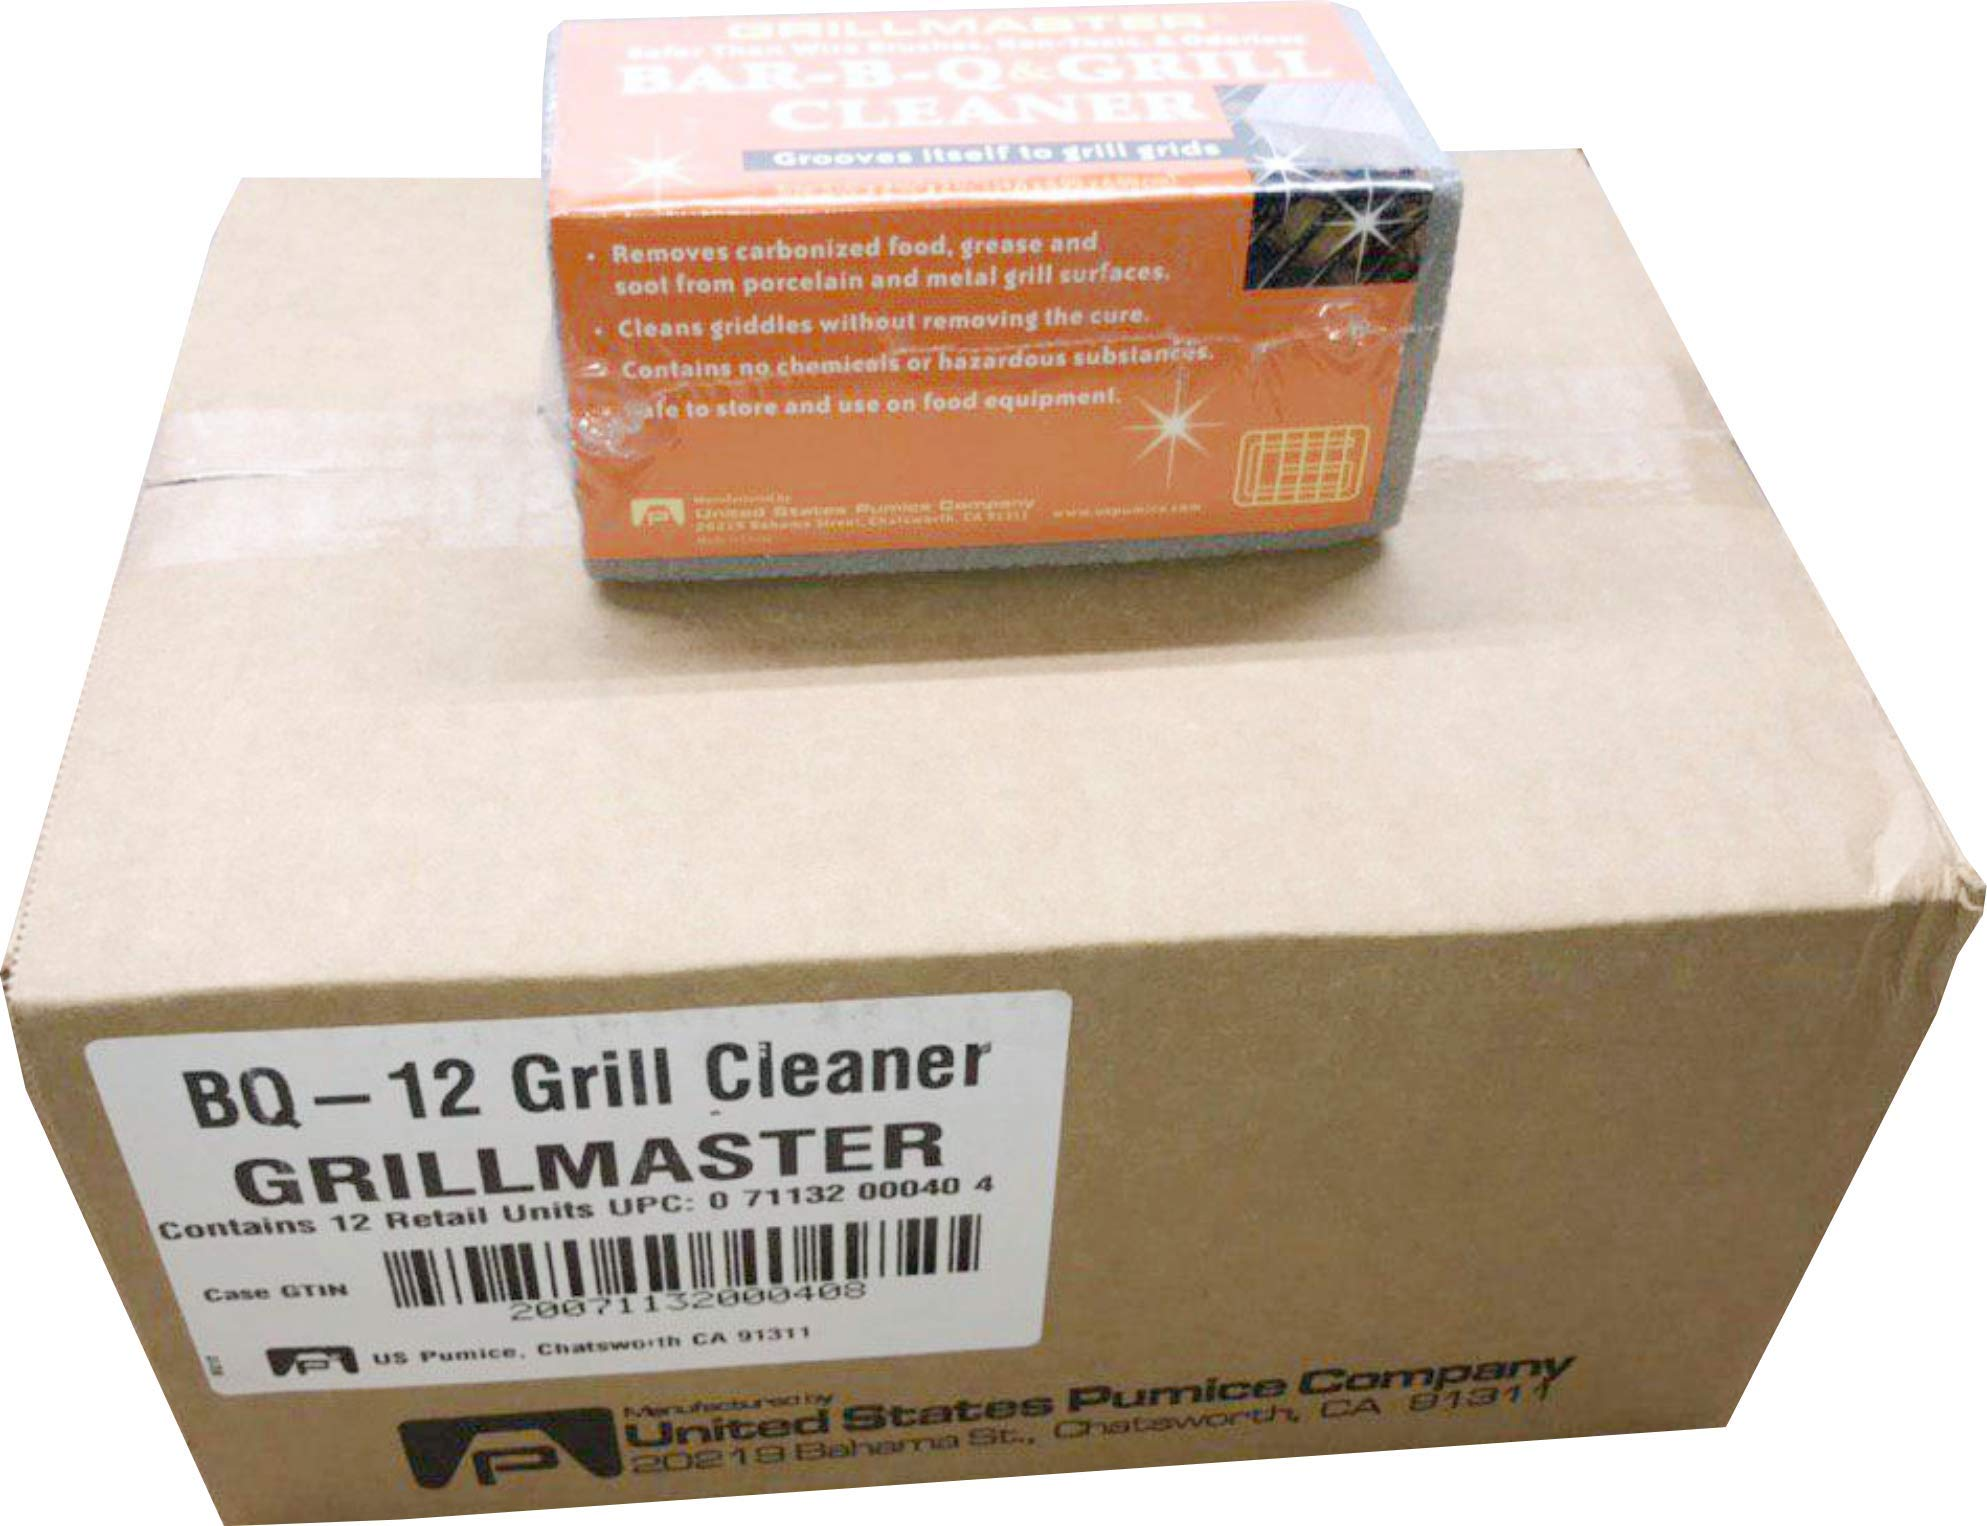 Grillmaster | BQ-12 | BBQ Cleaner Pumice Stone | Case of 12 | GrillBrick for Grill Cleaning | Medium Size | 5.75x2.75x2.75 inches (12) by GRILLMASTER (Image #1)